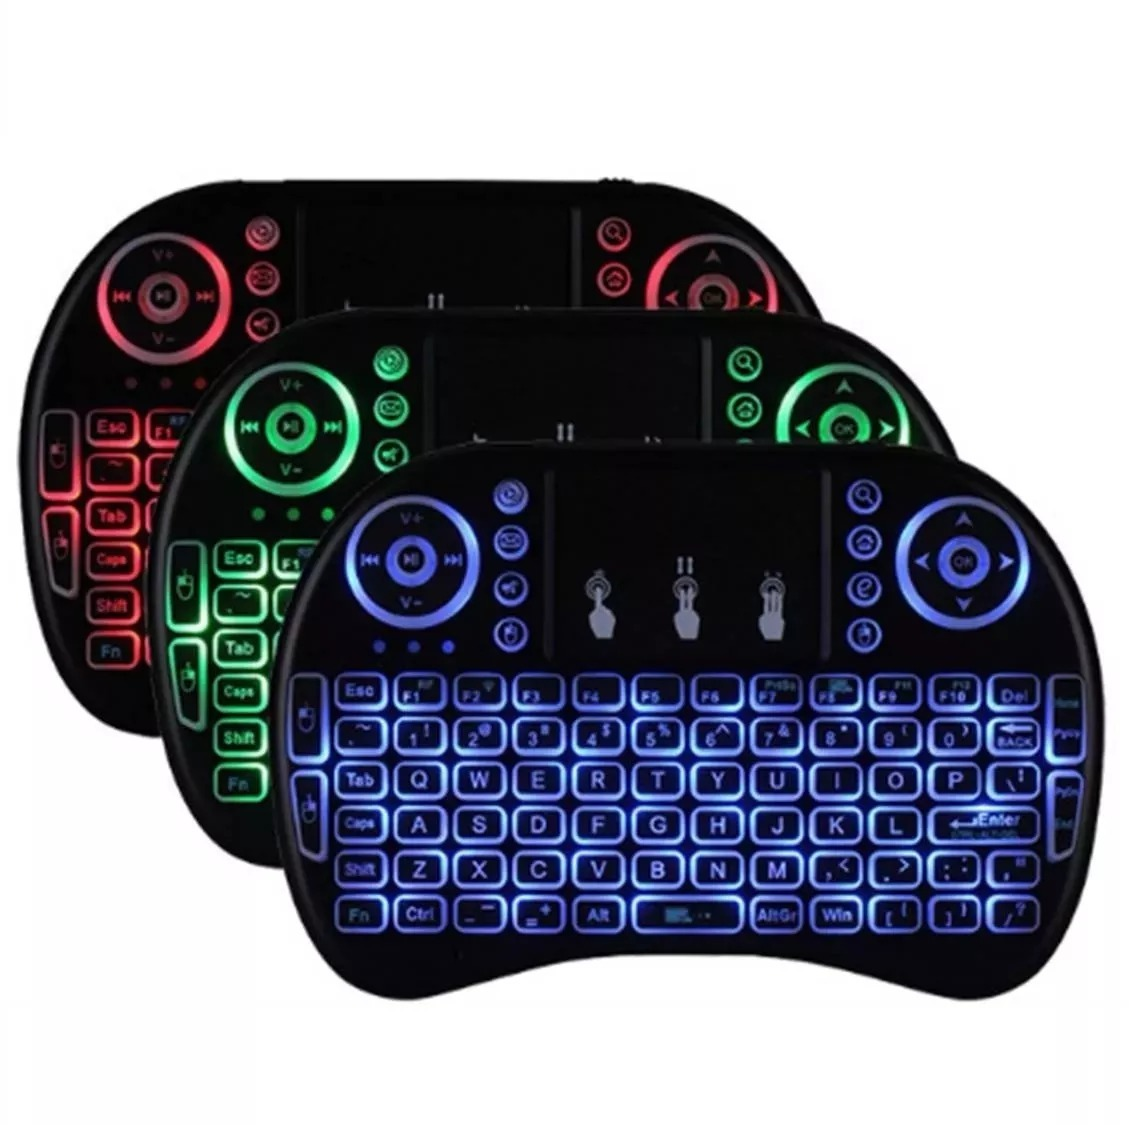 Mini Teclado Wireless Bluetooth Com Luz Pc Tv Ps3 Xbox